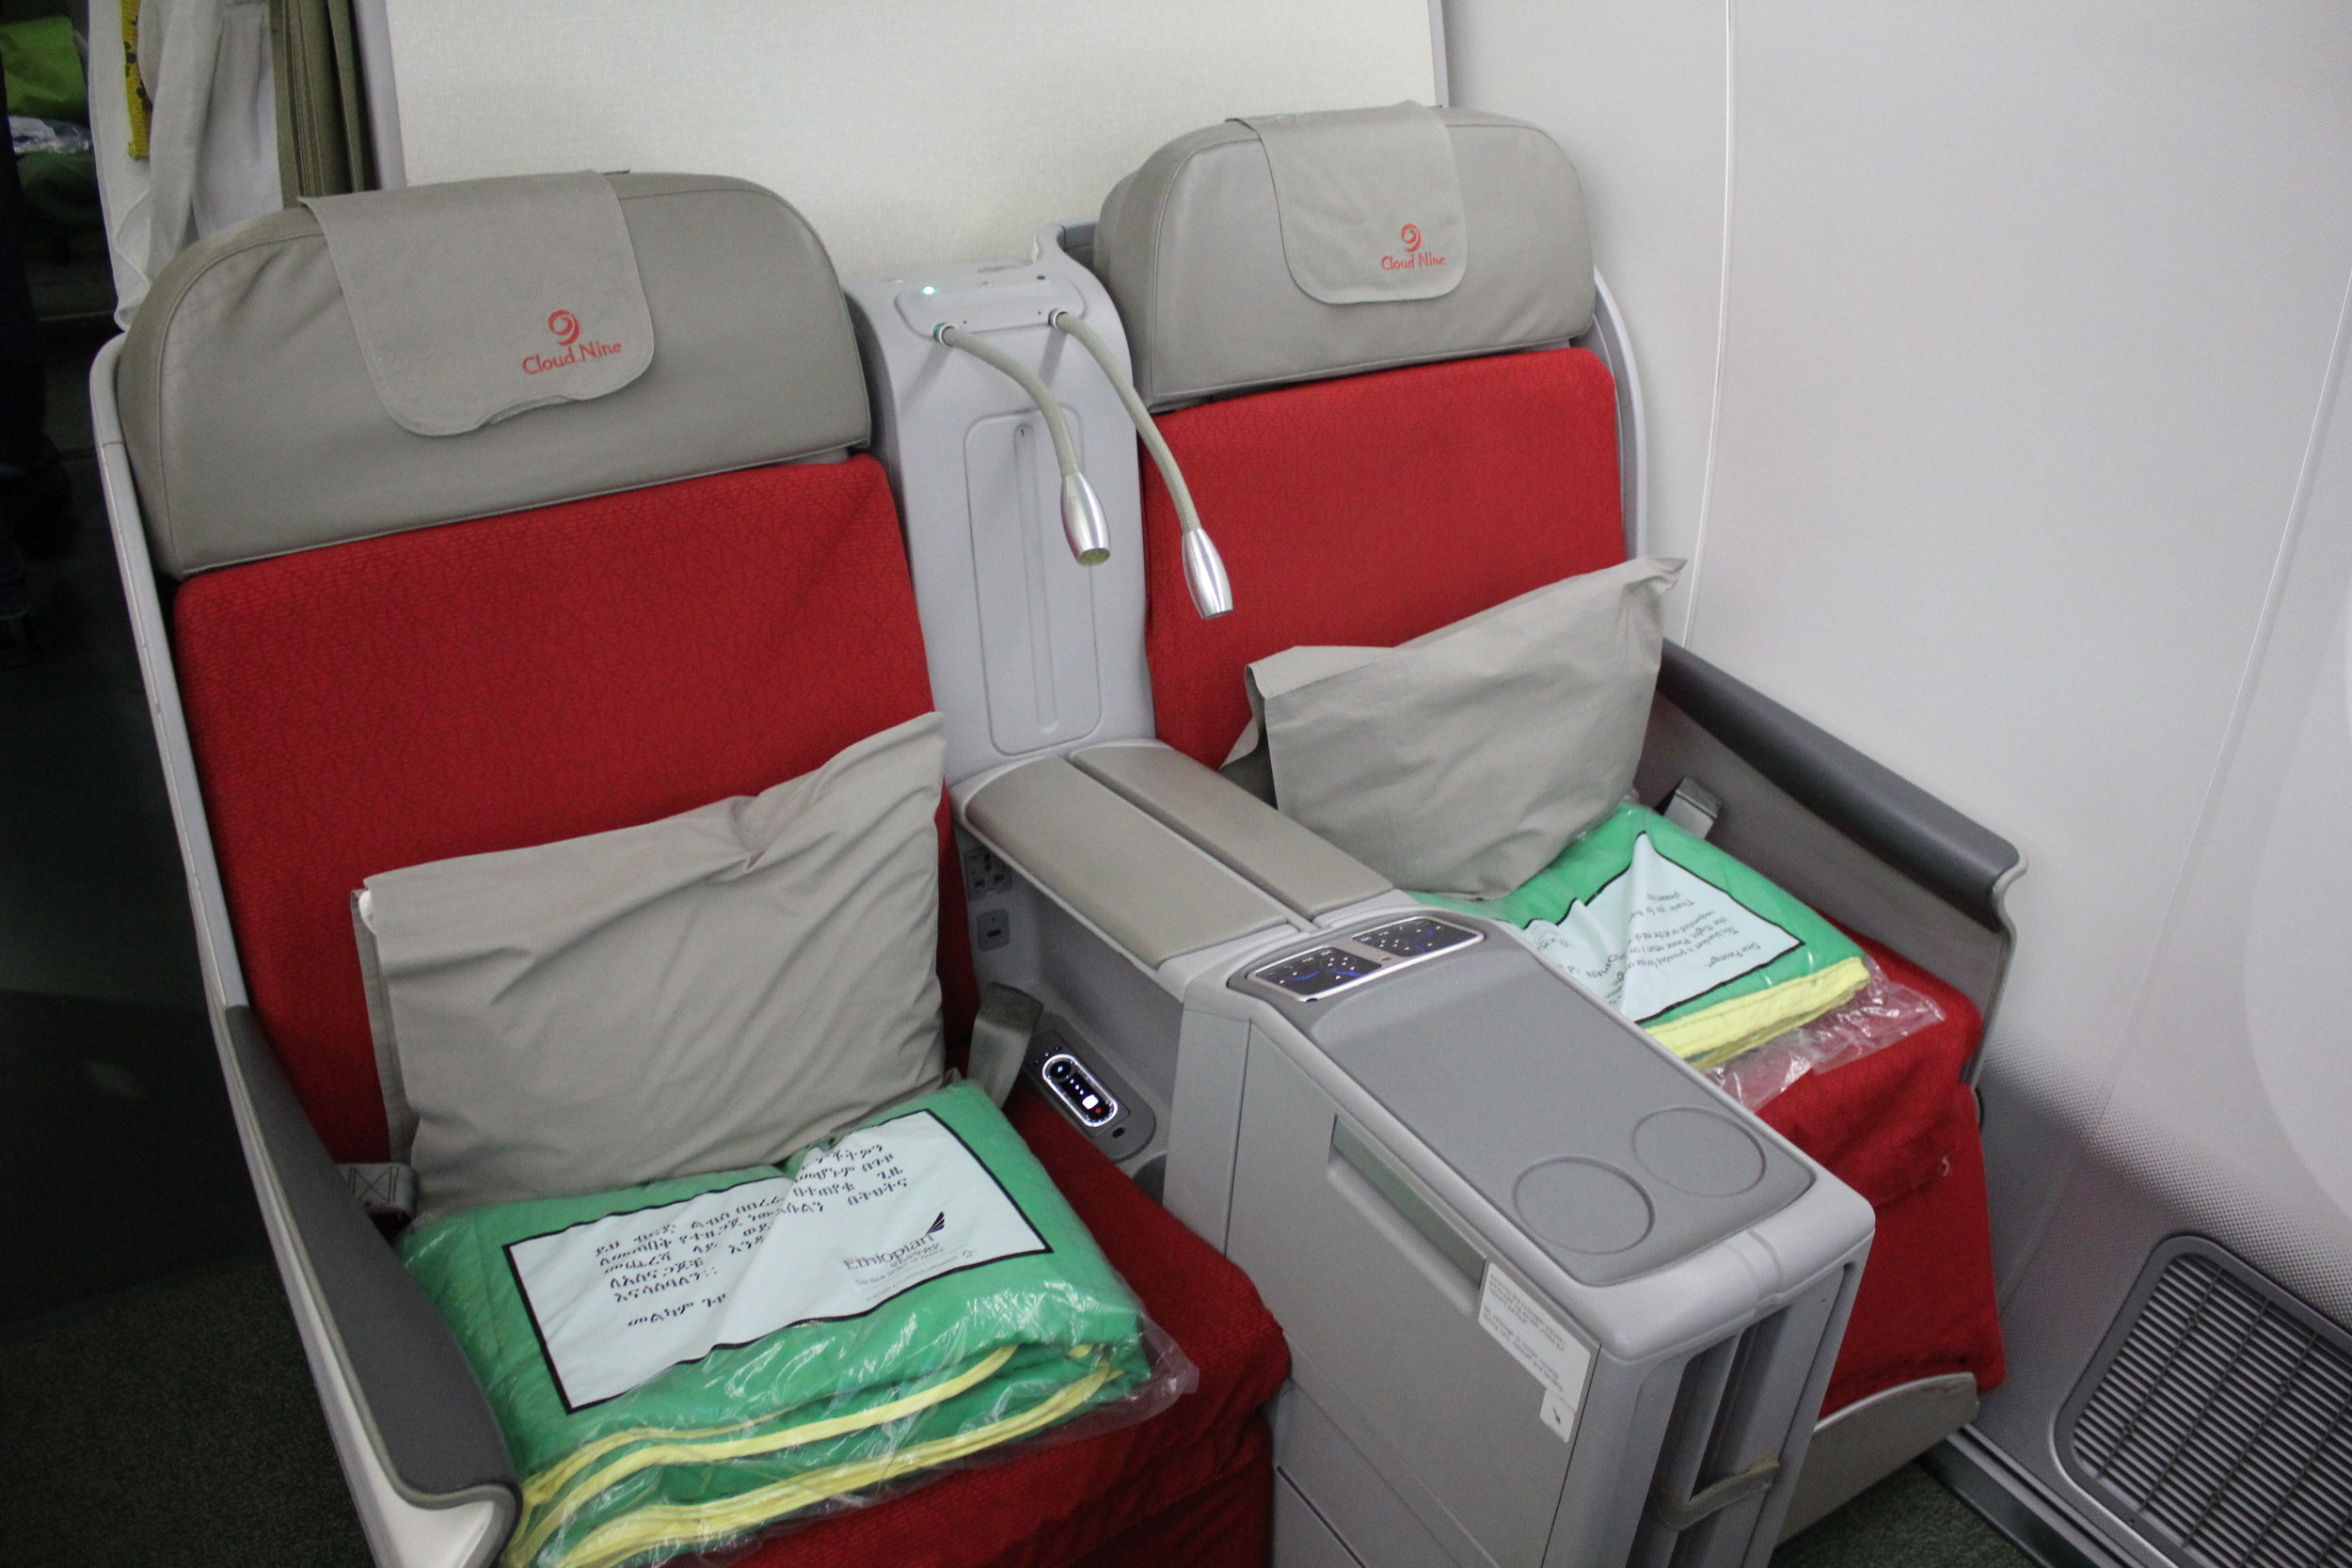 Ethiopian Airlines business class – Seats 4A and 4B